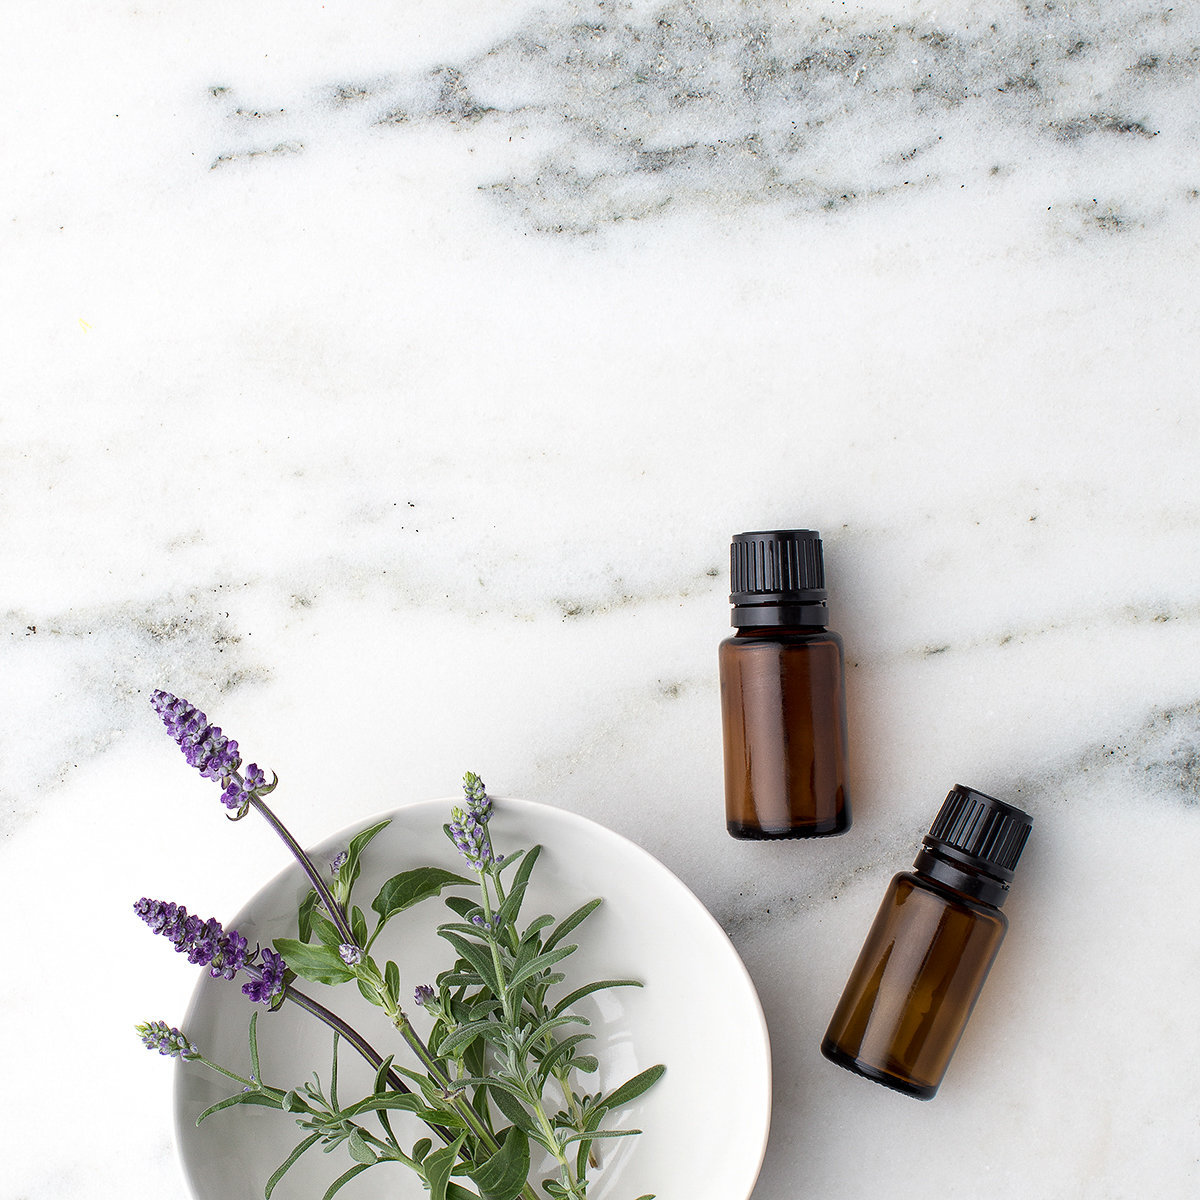 Sprig of lavender in a white dish and two bottles of doTERRA essential oils on marble countertop